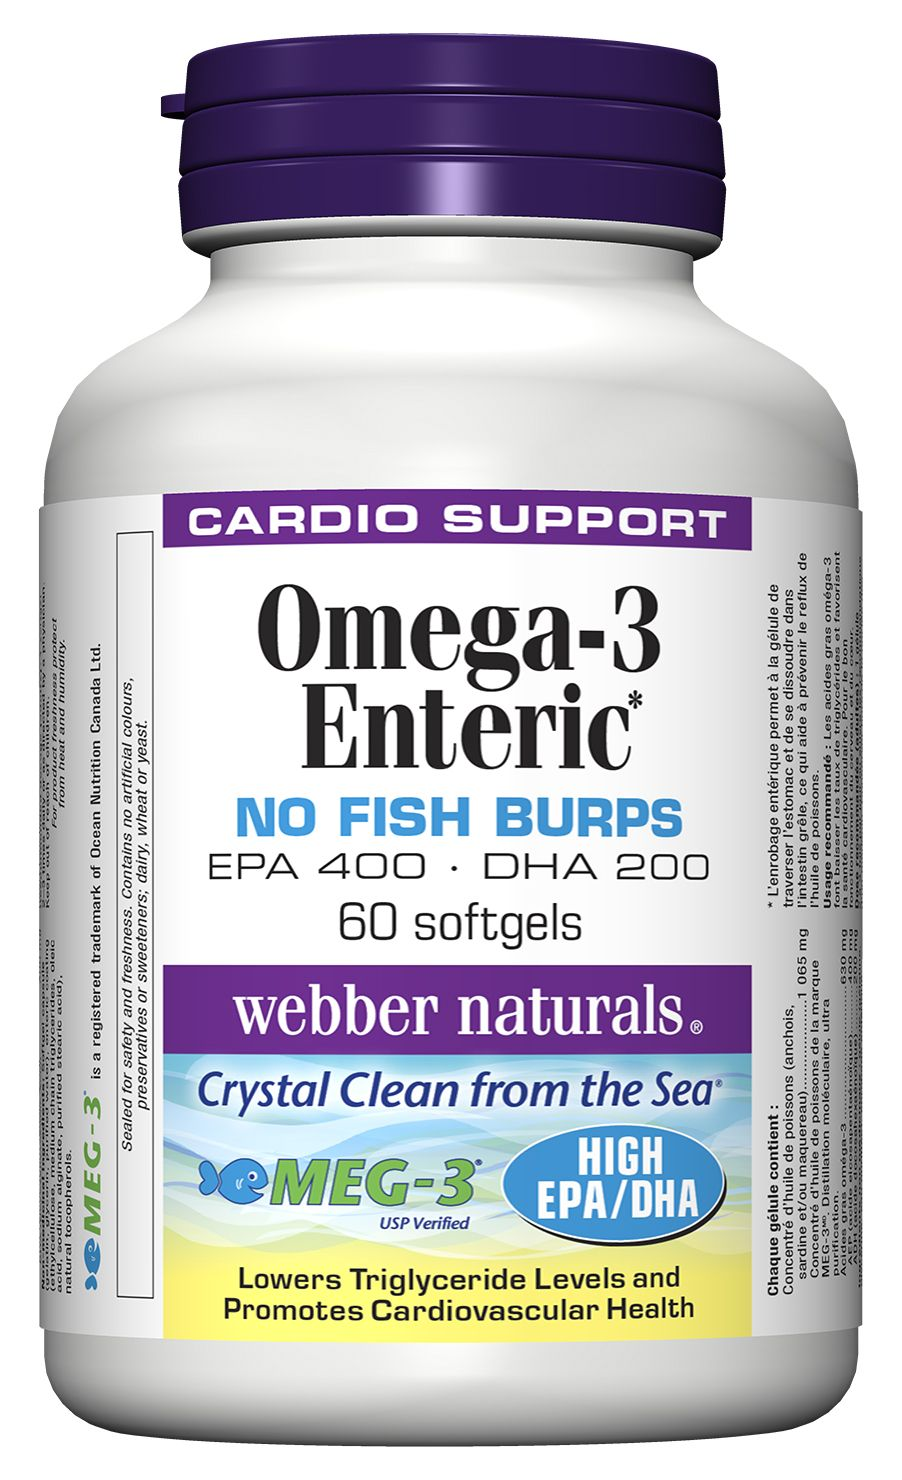 Omega–3 Enteric No Fish Burps, EPA400 • DHA200 from webber naturals® is a high potency formula that is standardized to provide 400 mg EPA and 200 mg DHA. It lowers triglyceride levels and promotes cardiovascular health. Each softgel has an enteric coating to eliminate the chance of heartburn or reflux. #vitamin #age